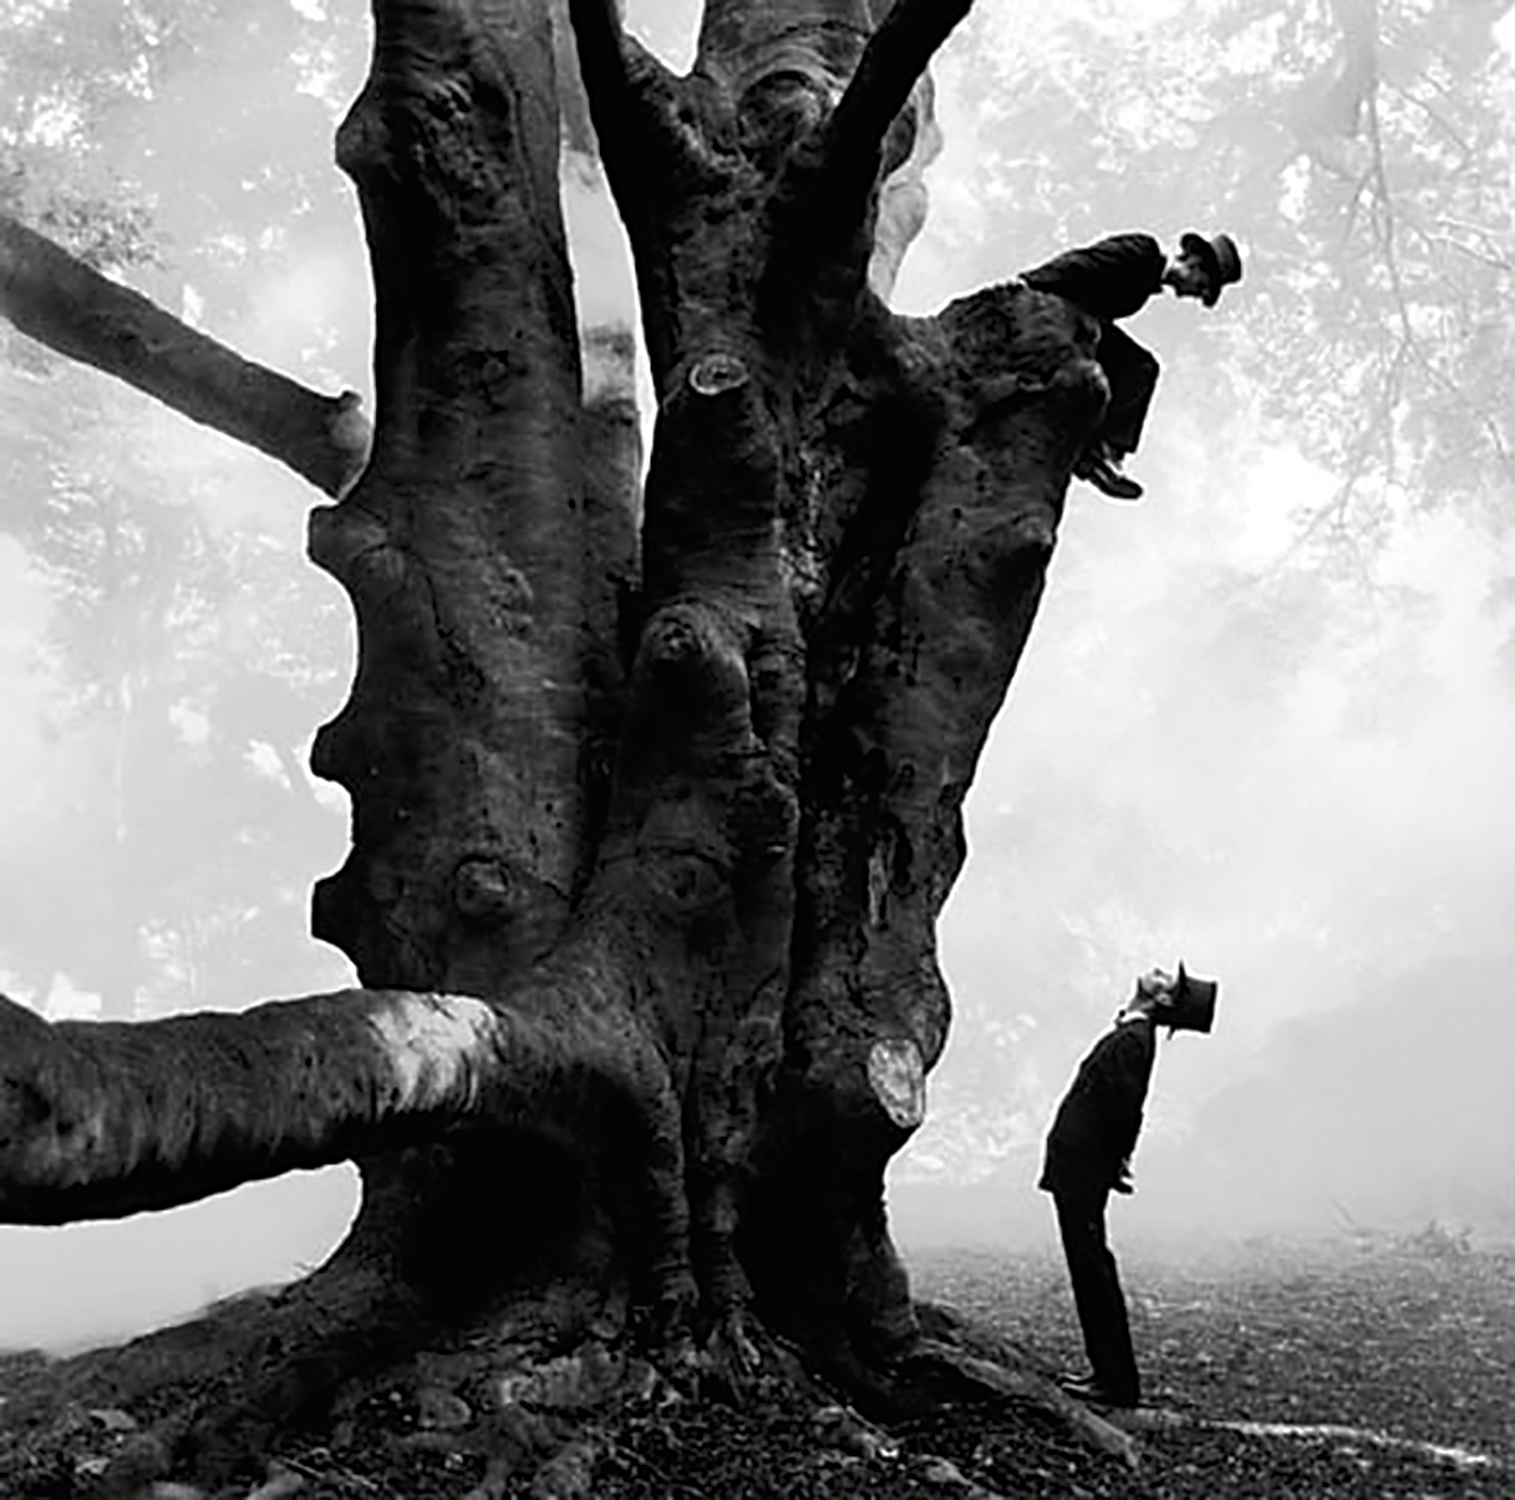 A photograph of a man bending over backwards to look up at a similarly dressed man who is sitting and looking down at him from a very oddly formed tree.